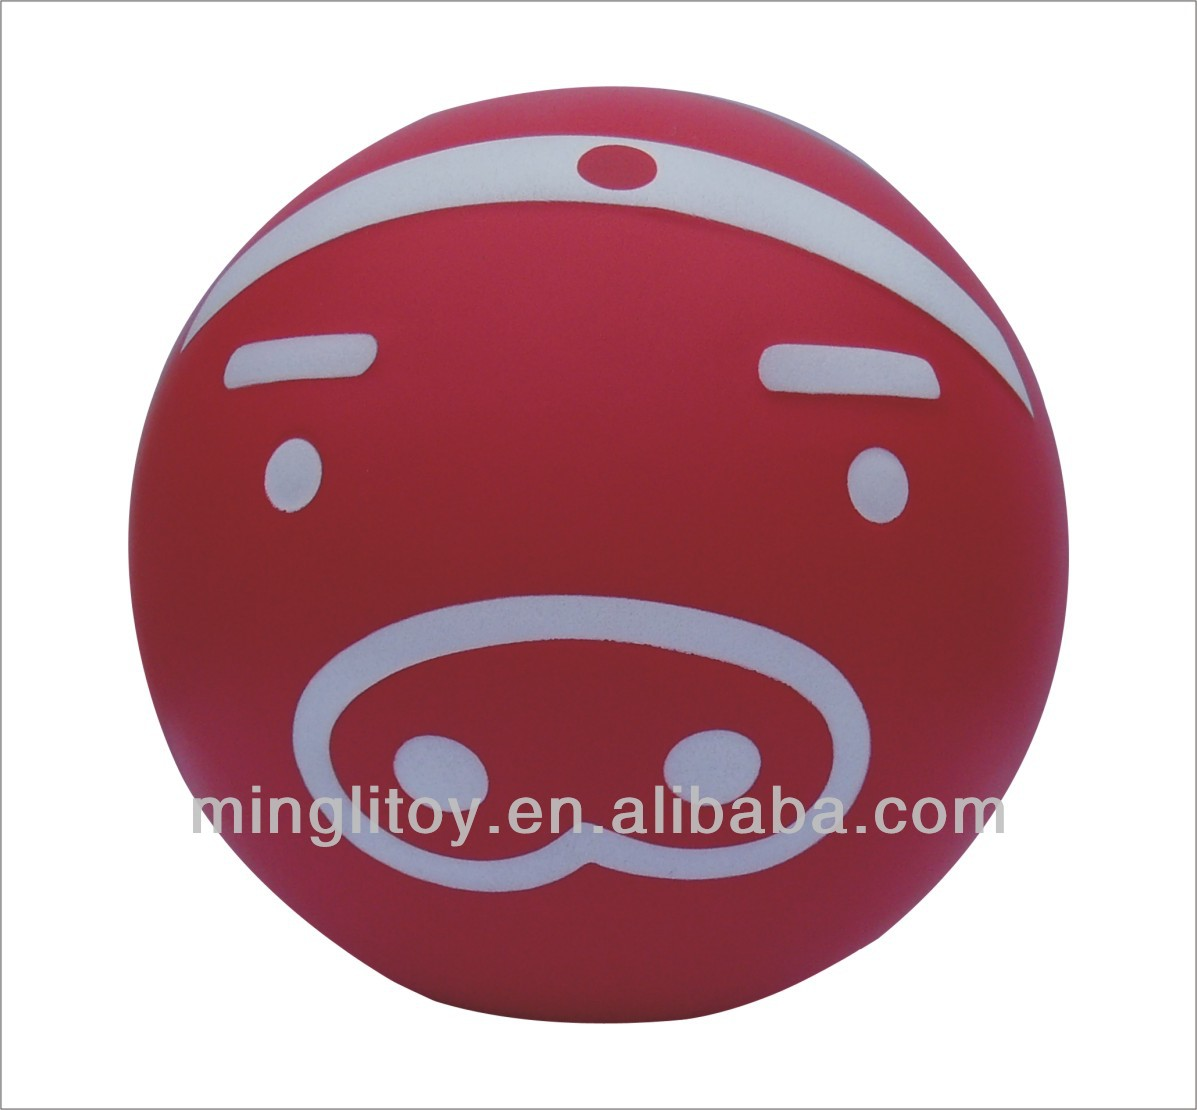 Customized PU Ball /PU Stress Ball/Stress Toys